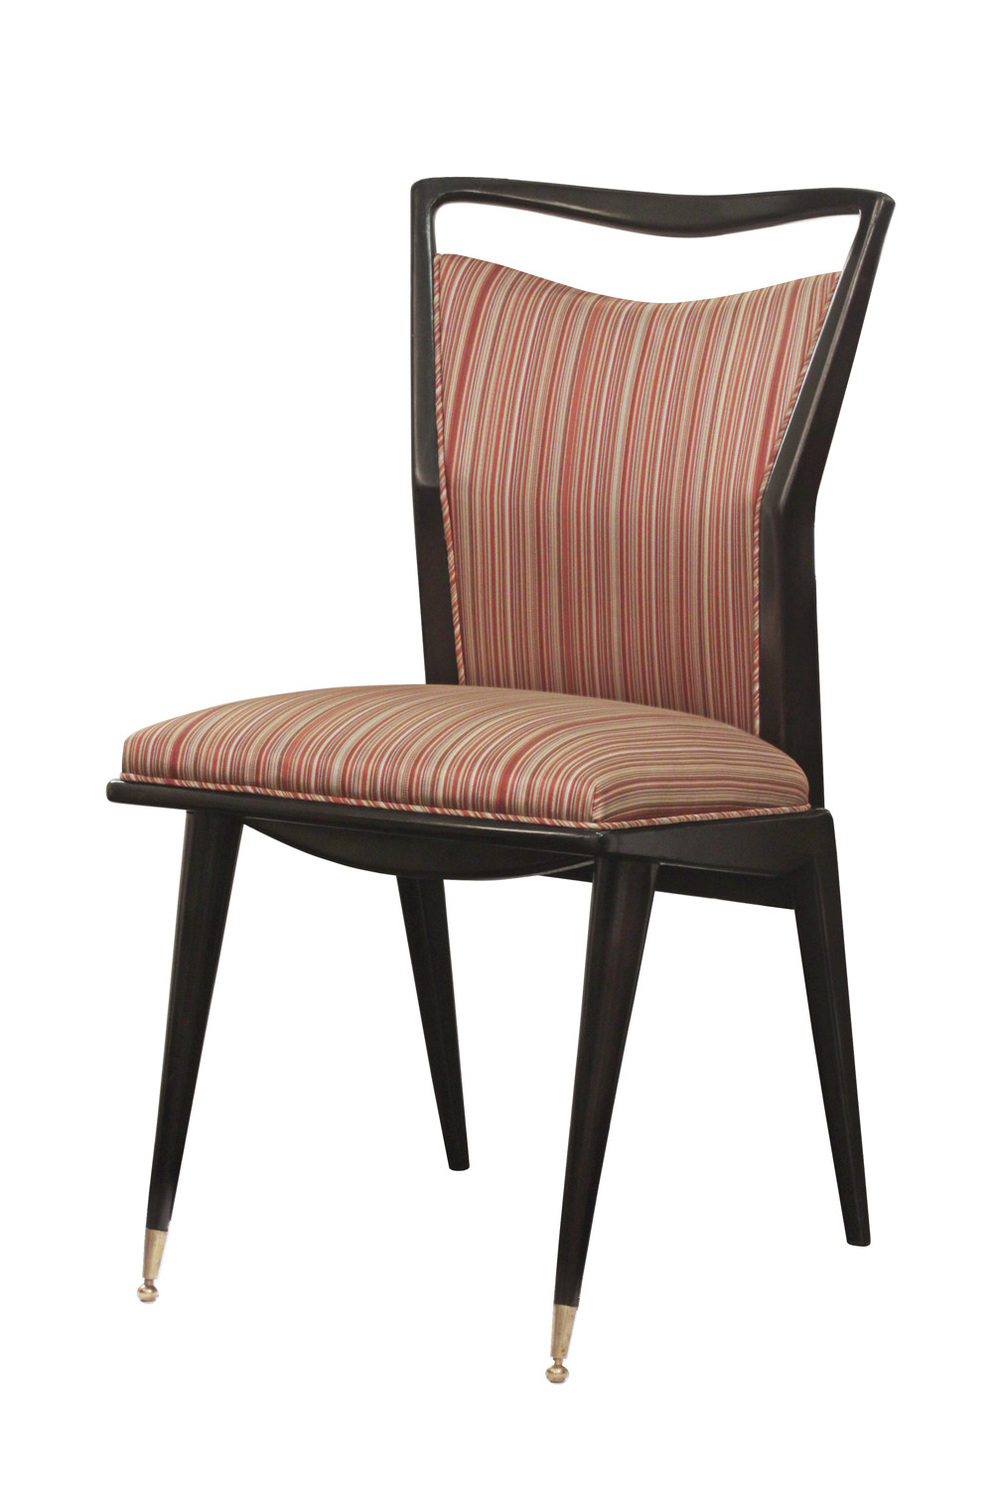 Ital 85 set 6 sculptrl ebonized diningchairs161 detail1 hires.jpg